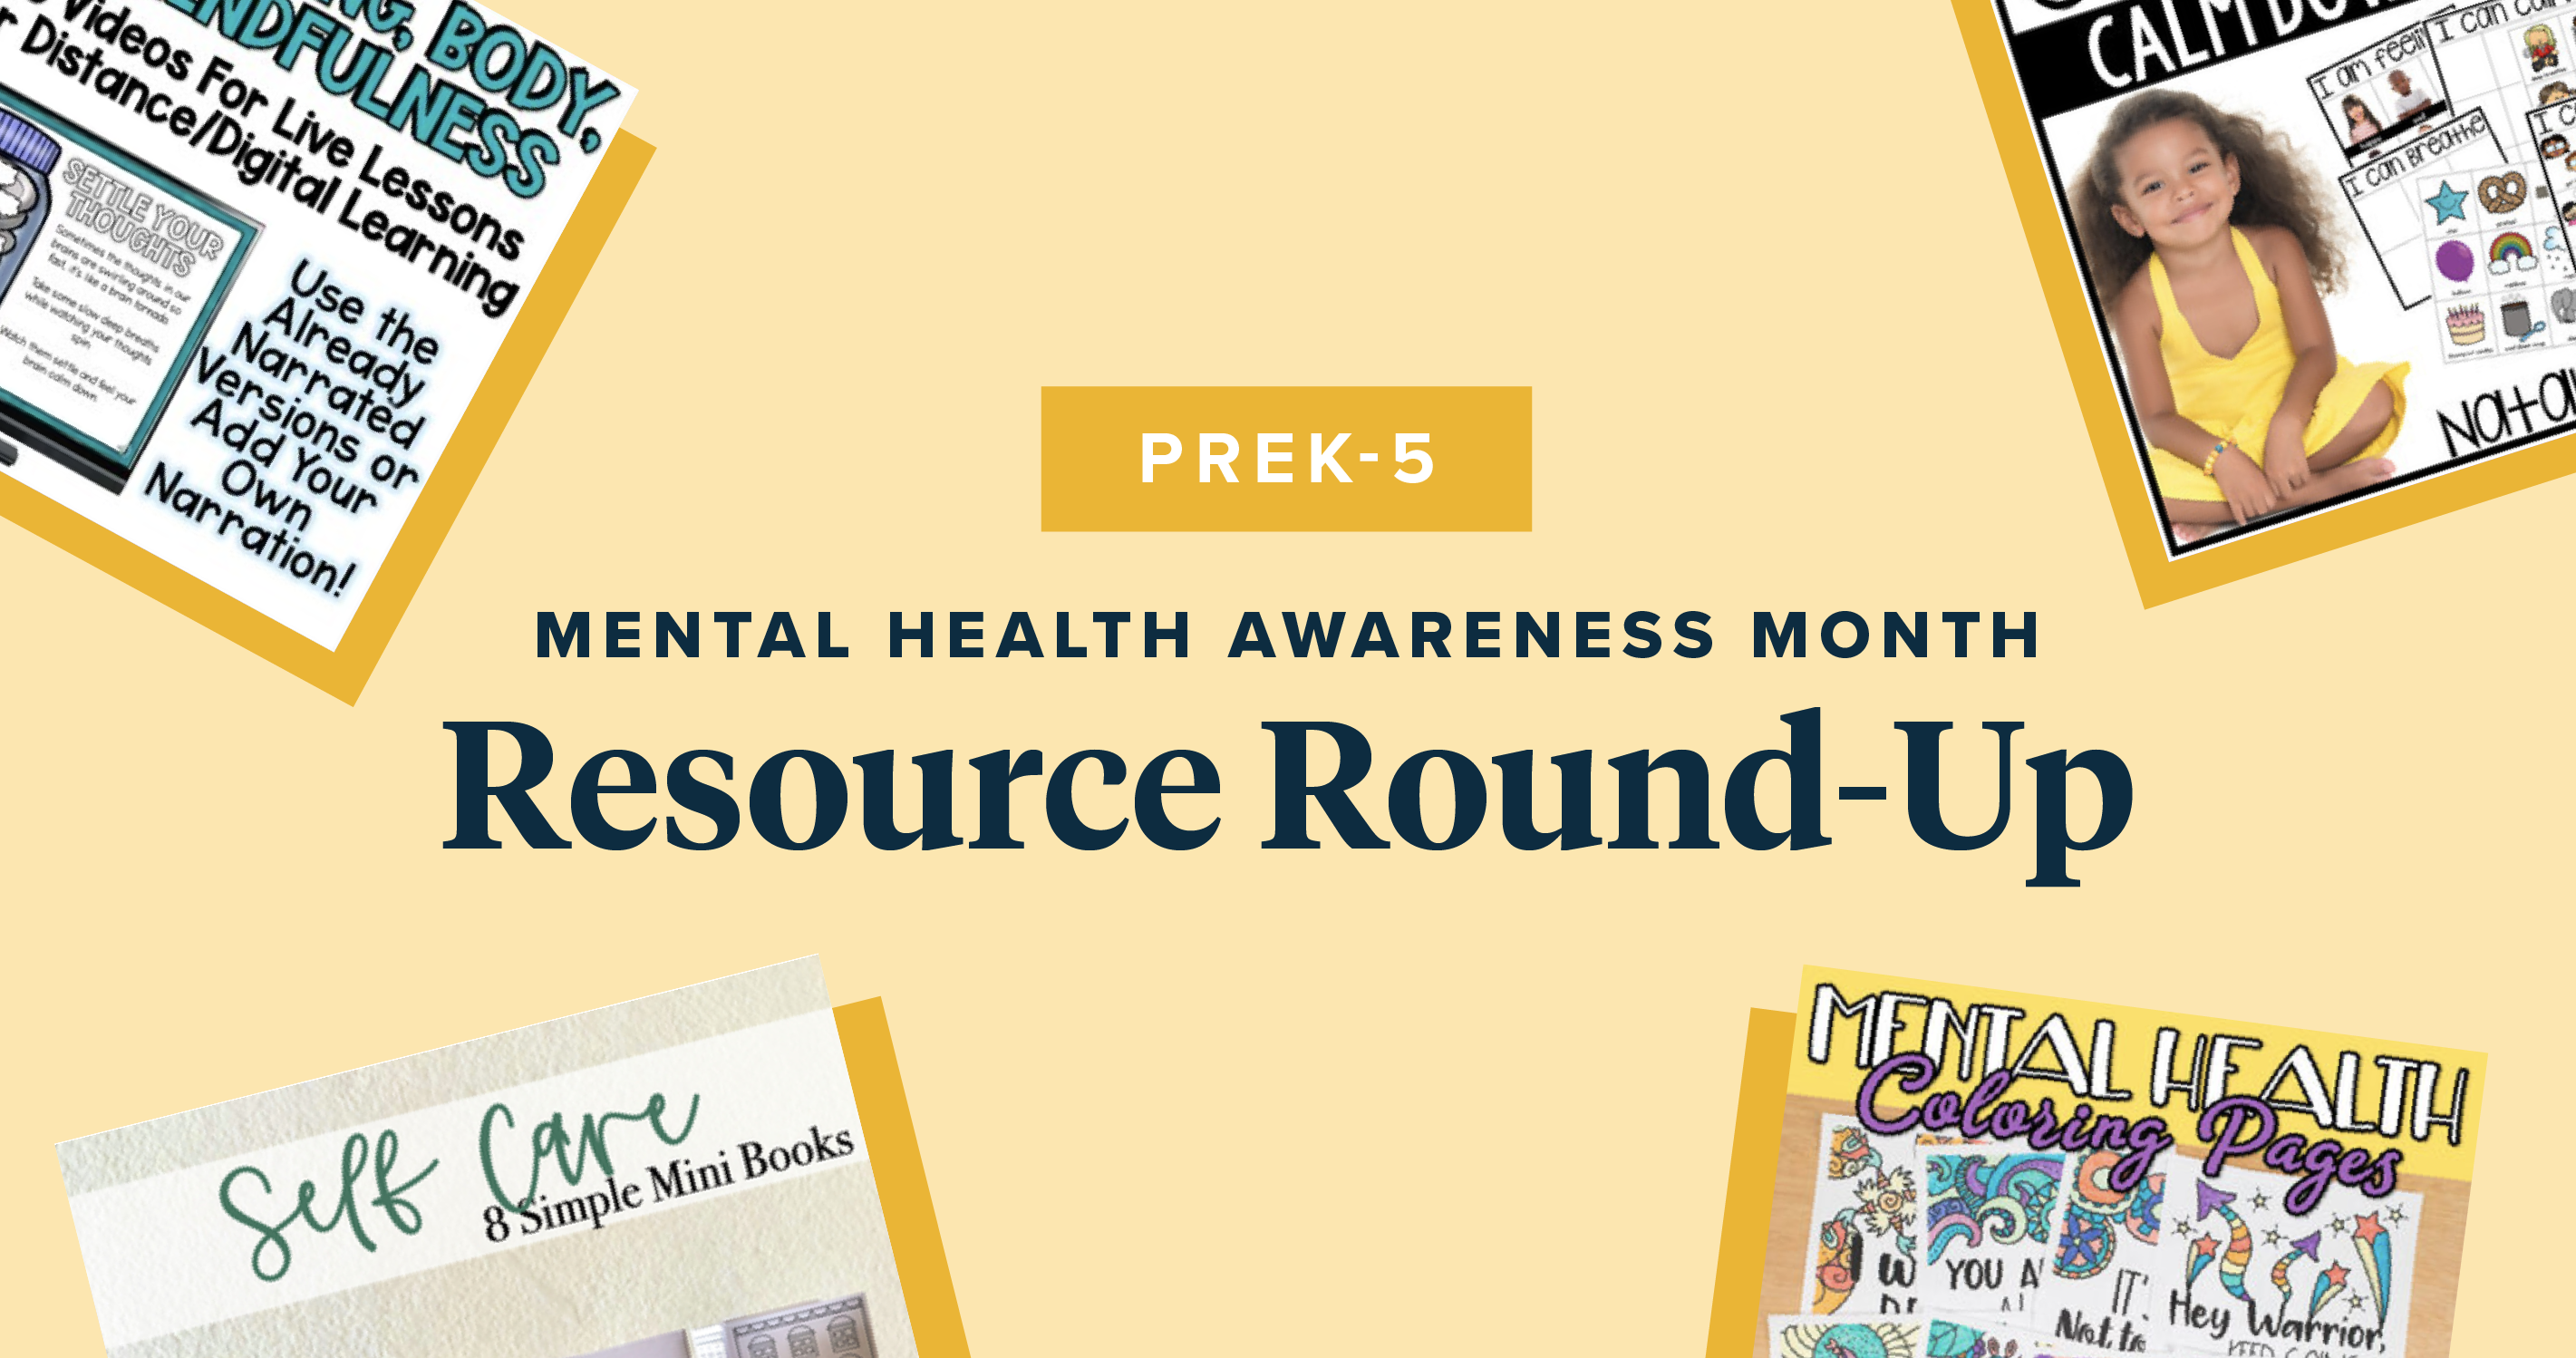 PreK-5 Mental Health Awareness Month Resource Round-Up